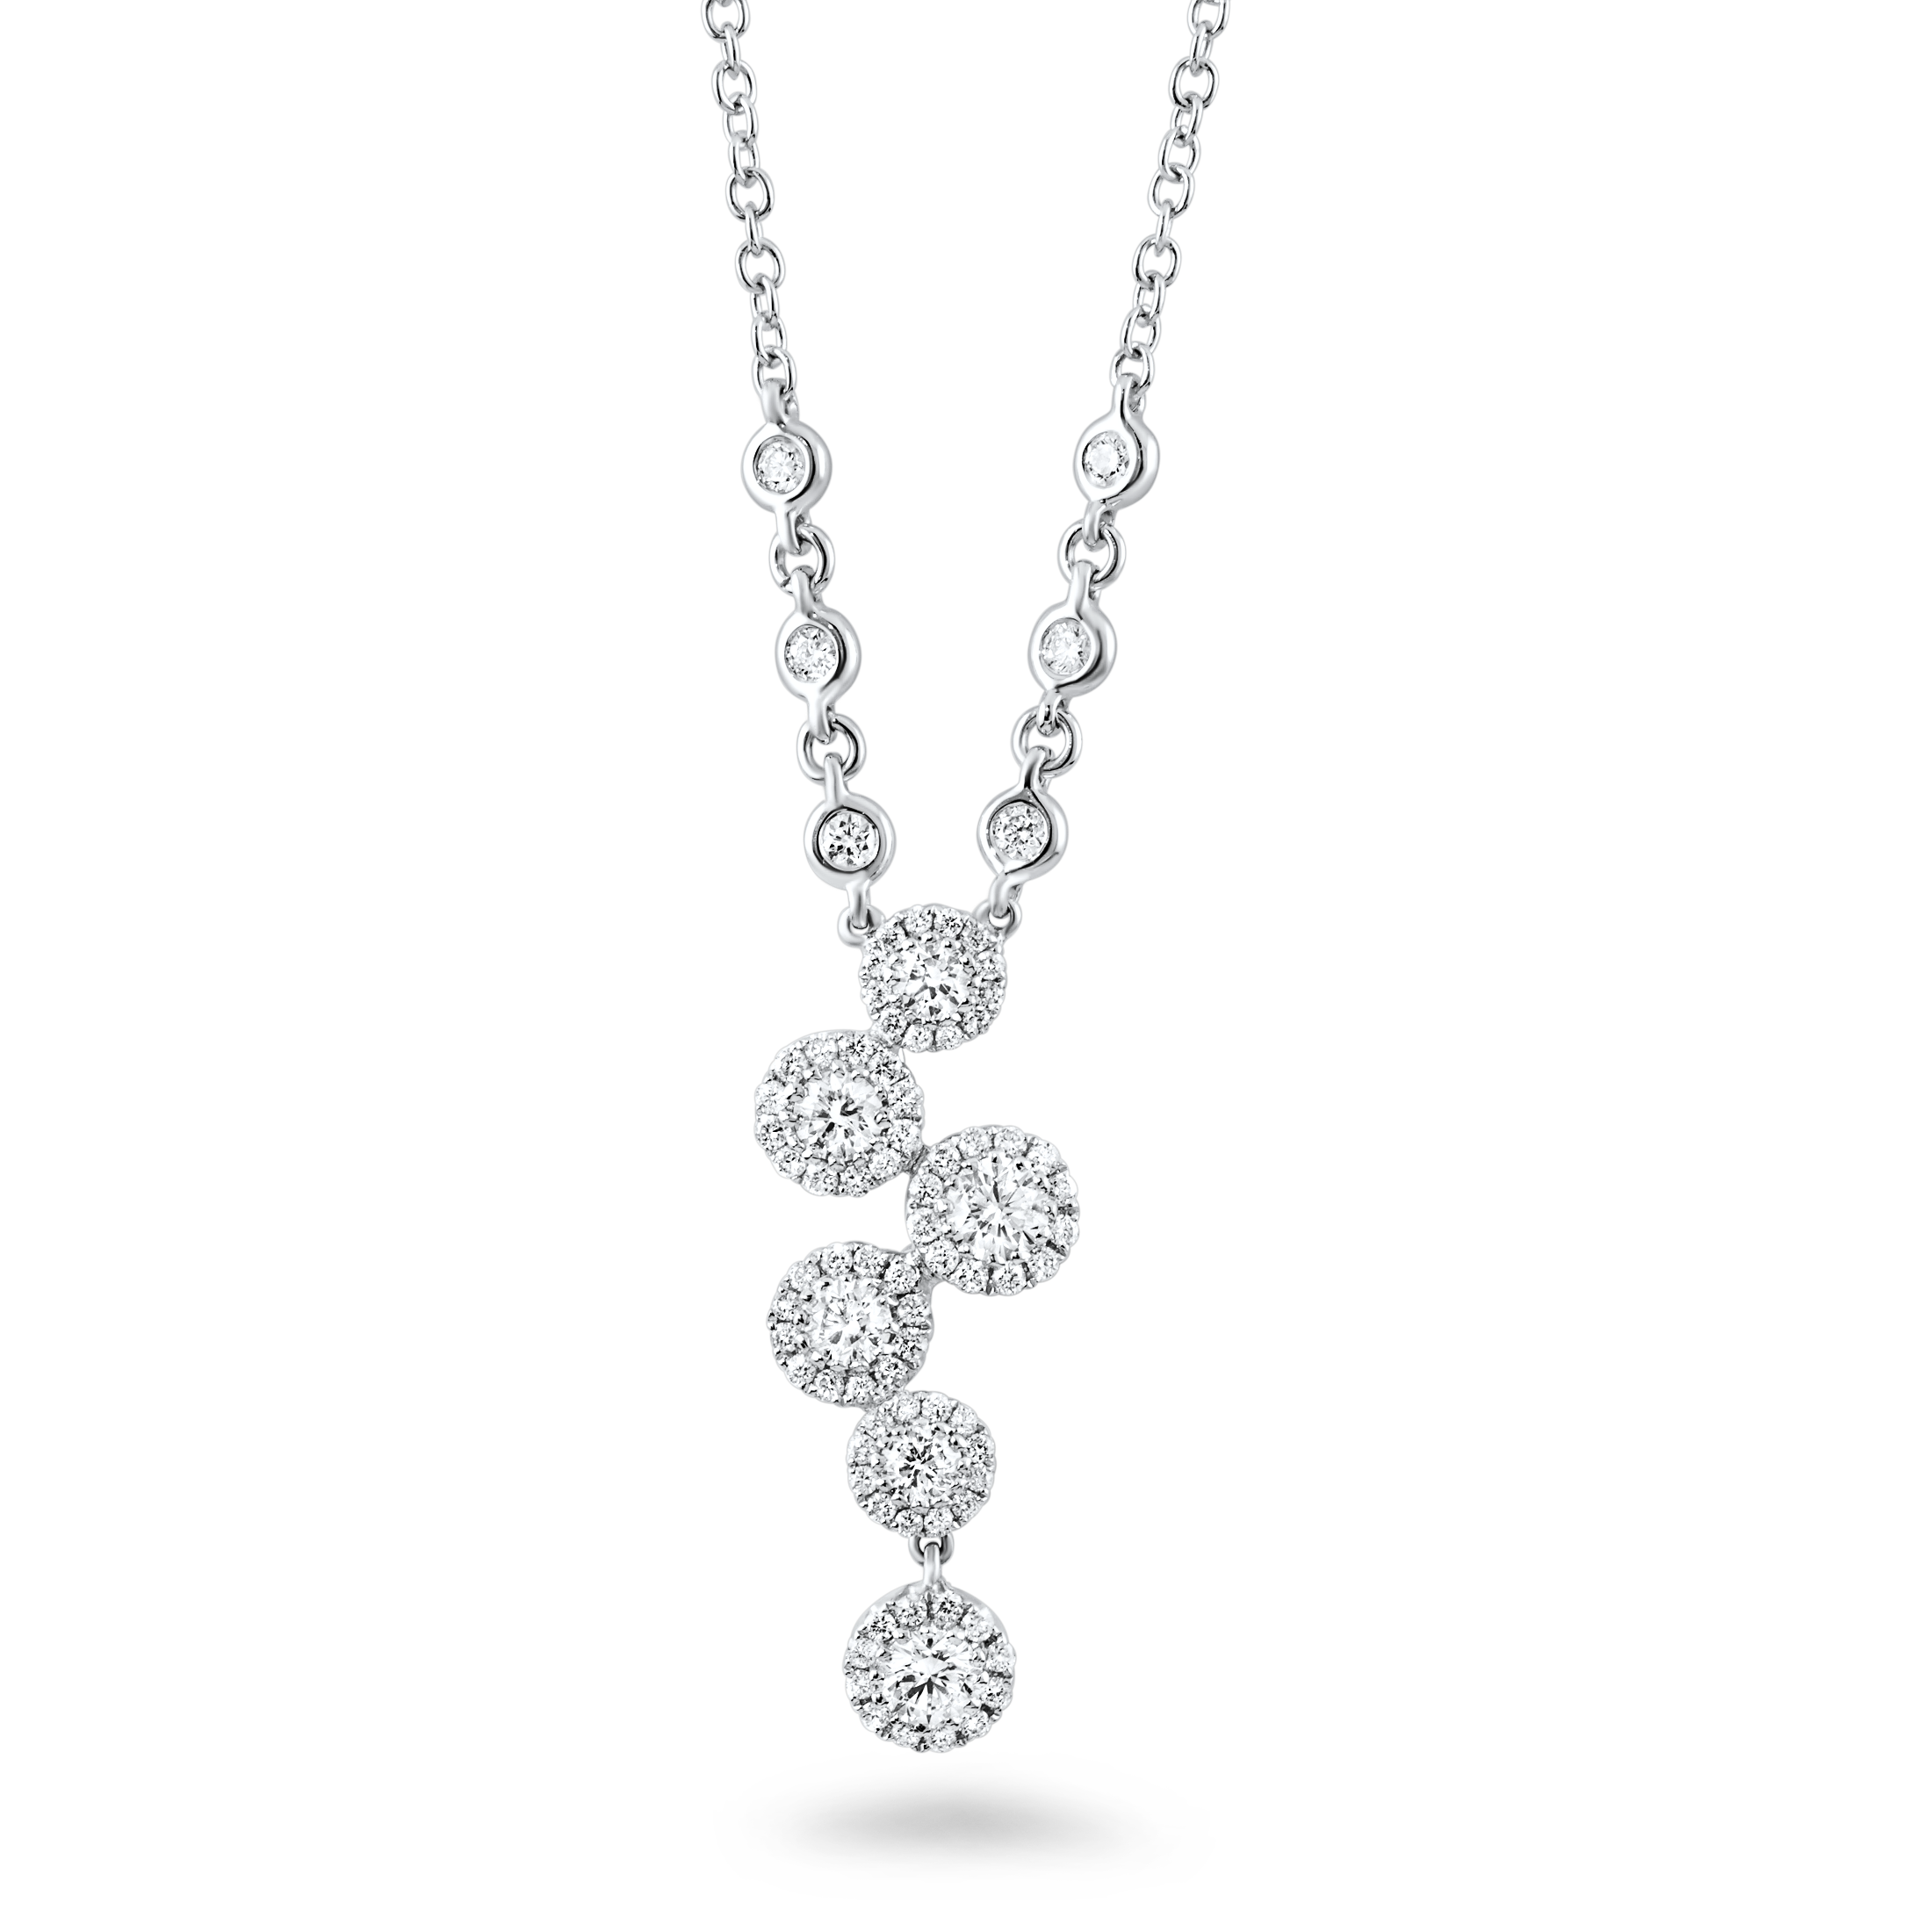 Diamond necklace png mart. Treasure clipart jewelry